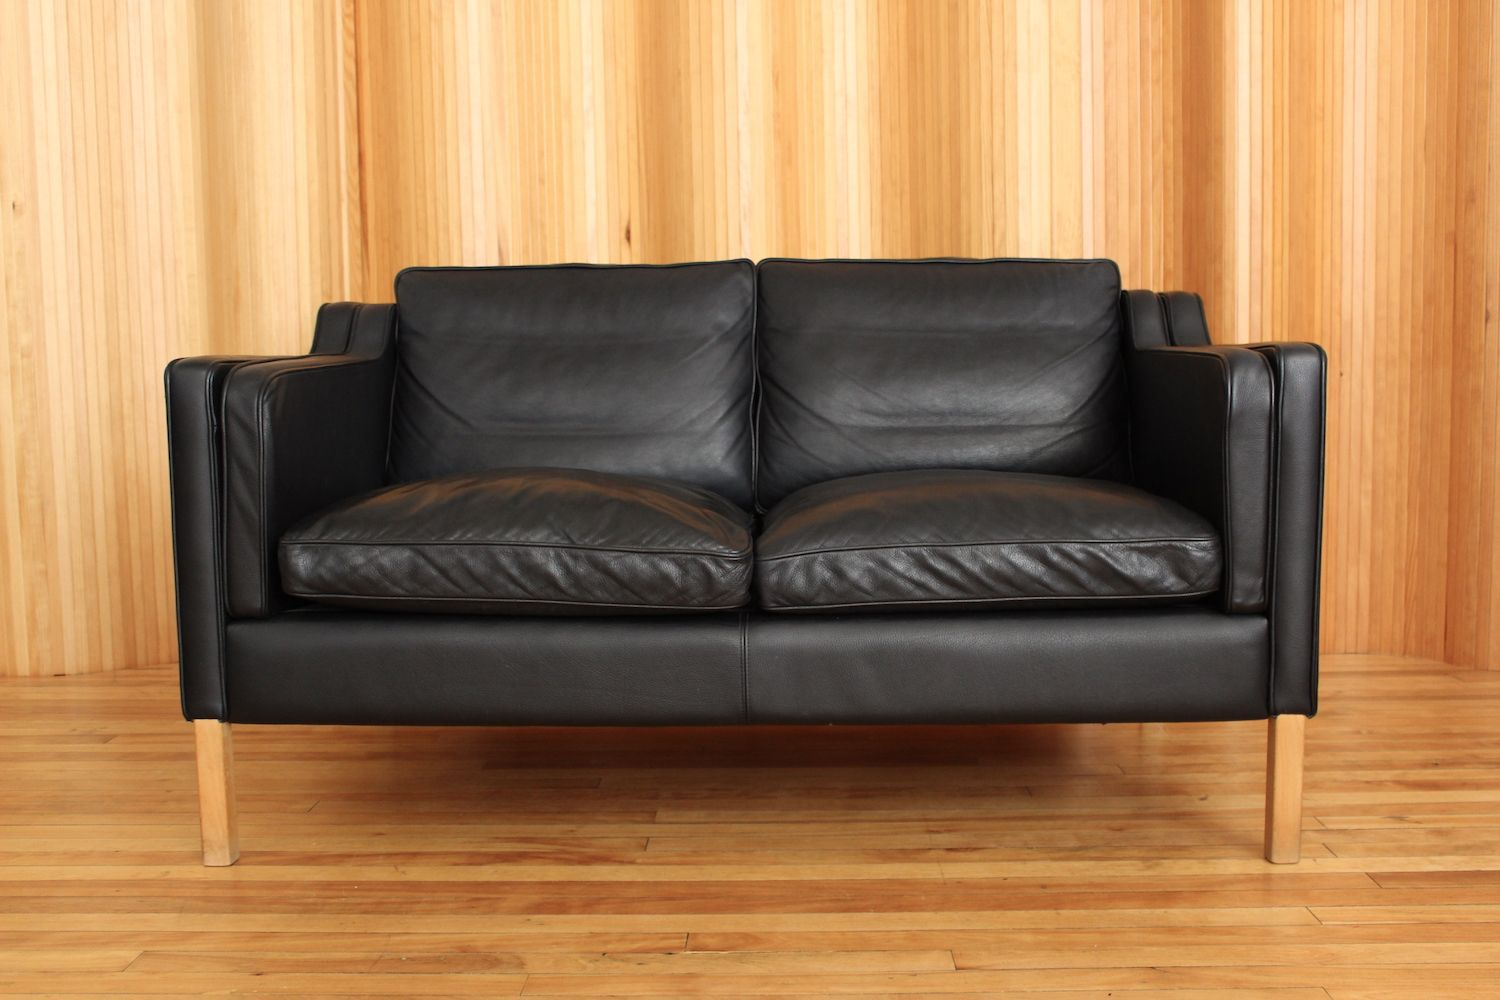 Black Two Seater Leather Sofa From Stouby, 1970s